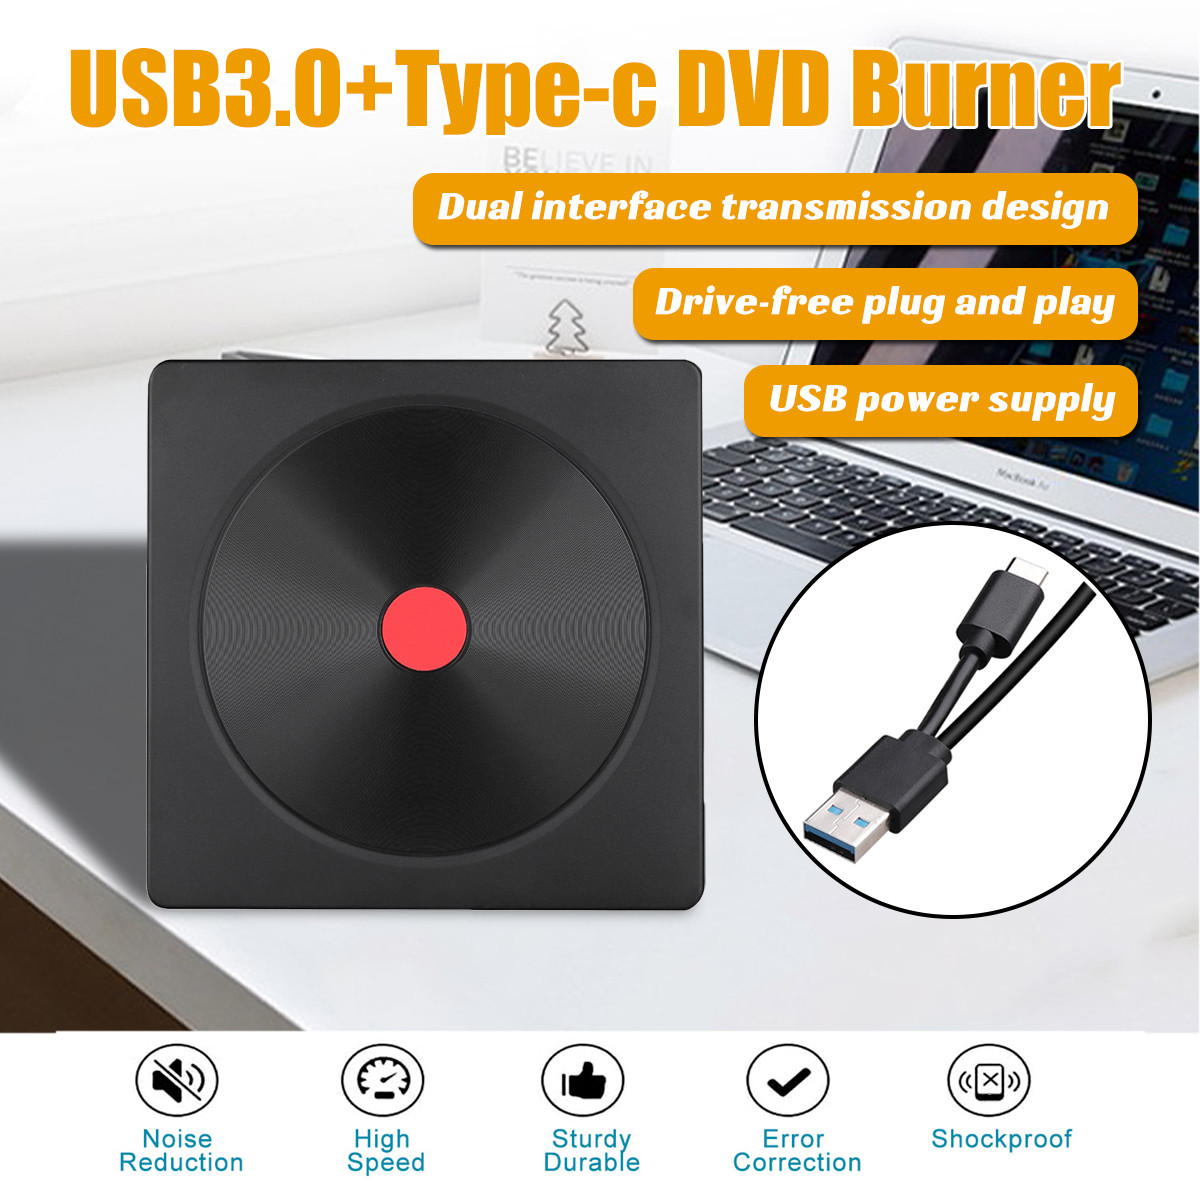 USB 3.0 Type-C High Speed External CD/DVD Drive Burner Polished For Mac/Windows 10/Laptop/PC Optical Drive Player Writer image